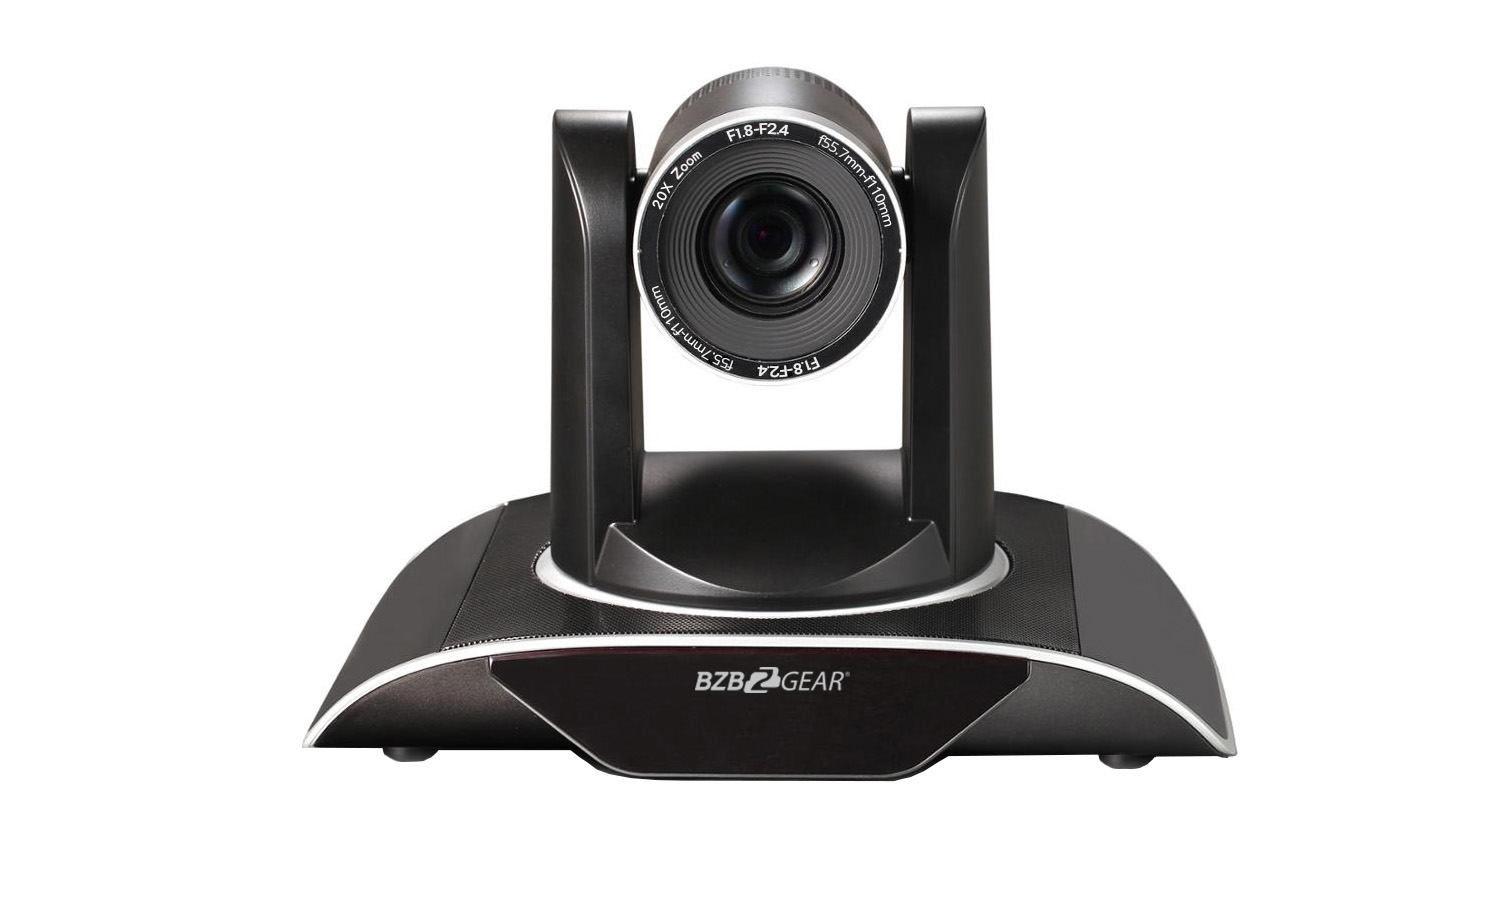 BG-BPTZ-20XHUDR PTZ 20X Zoom Full HD USB3.0 RS232 Live Streaming Camera by BZBGEAR